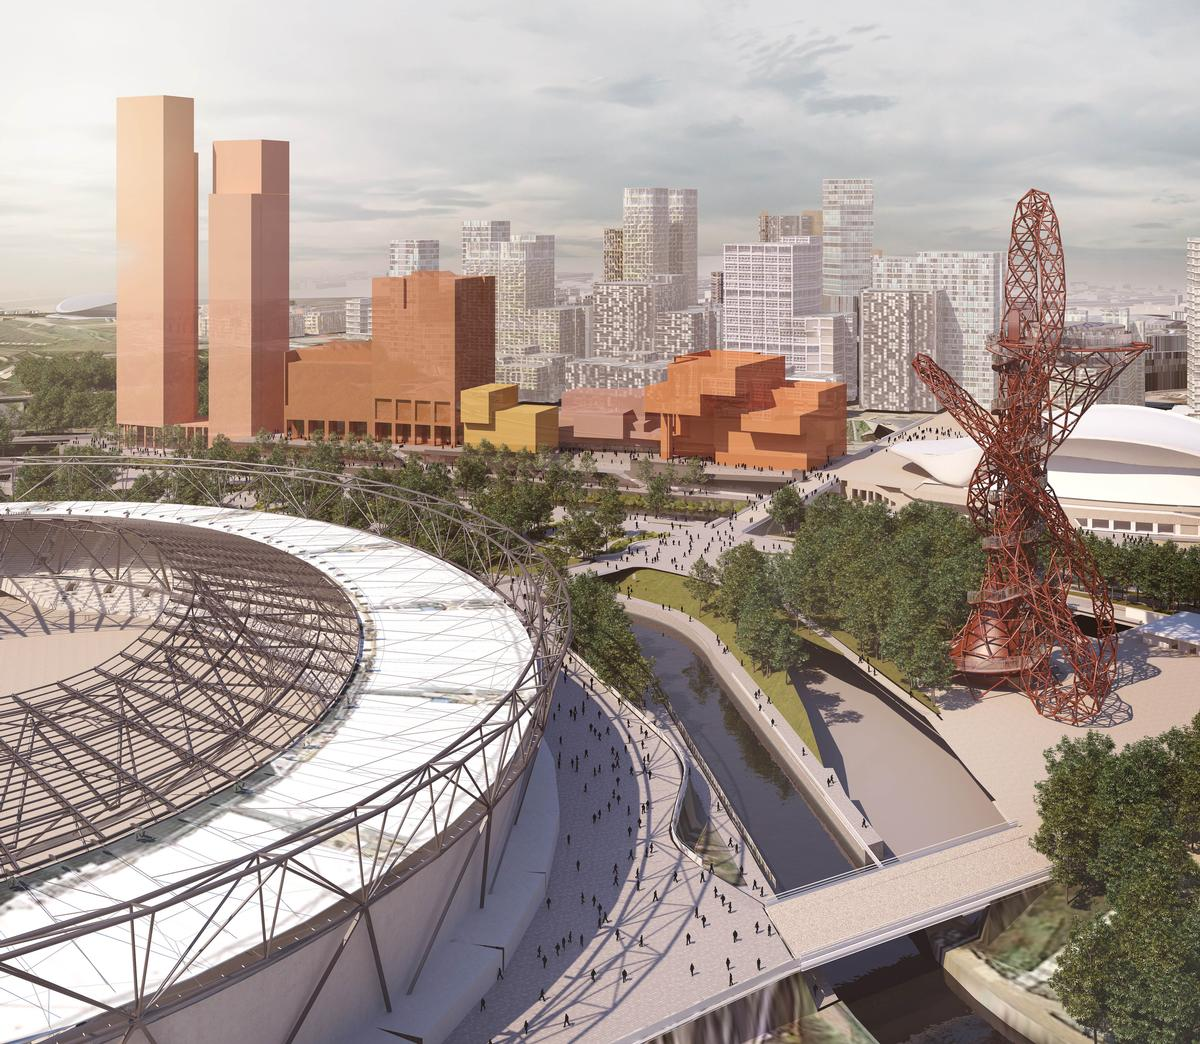 Olympicolpolis is situated next to Zaha Hadid's London Aquatics Centre and close to Anish Kapoor's ArcelorMittal Orbit / Queen Elizabeth Olympic Park